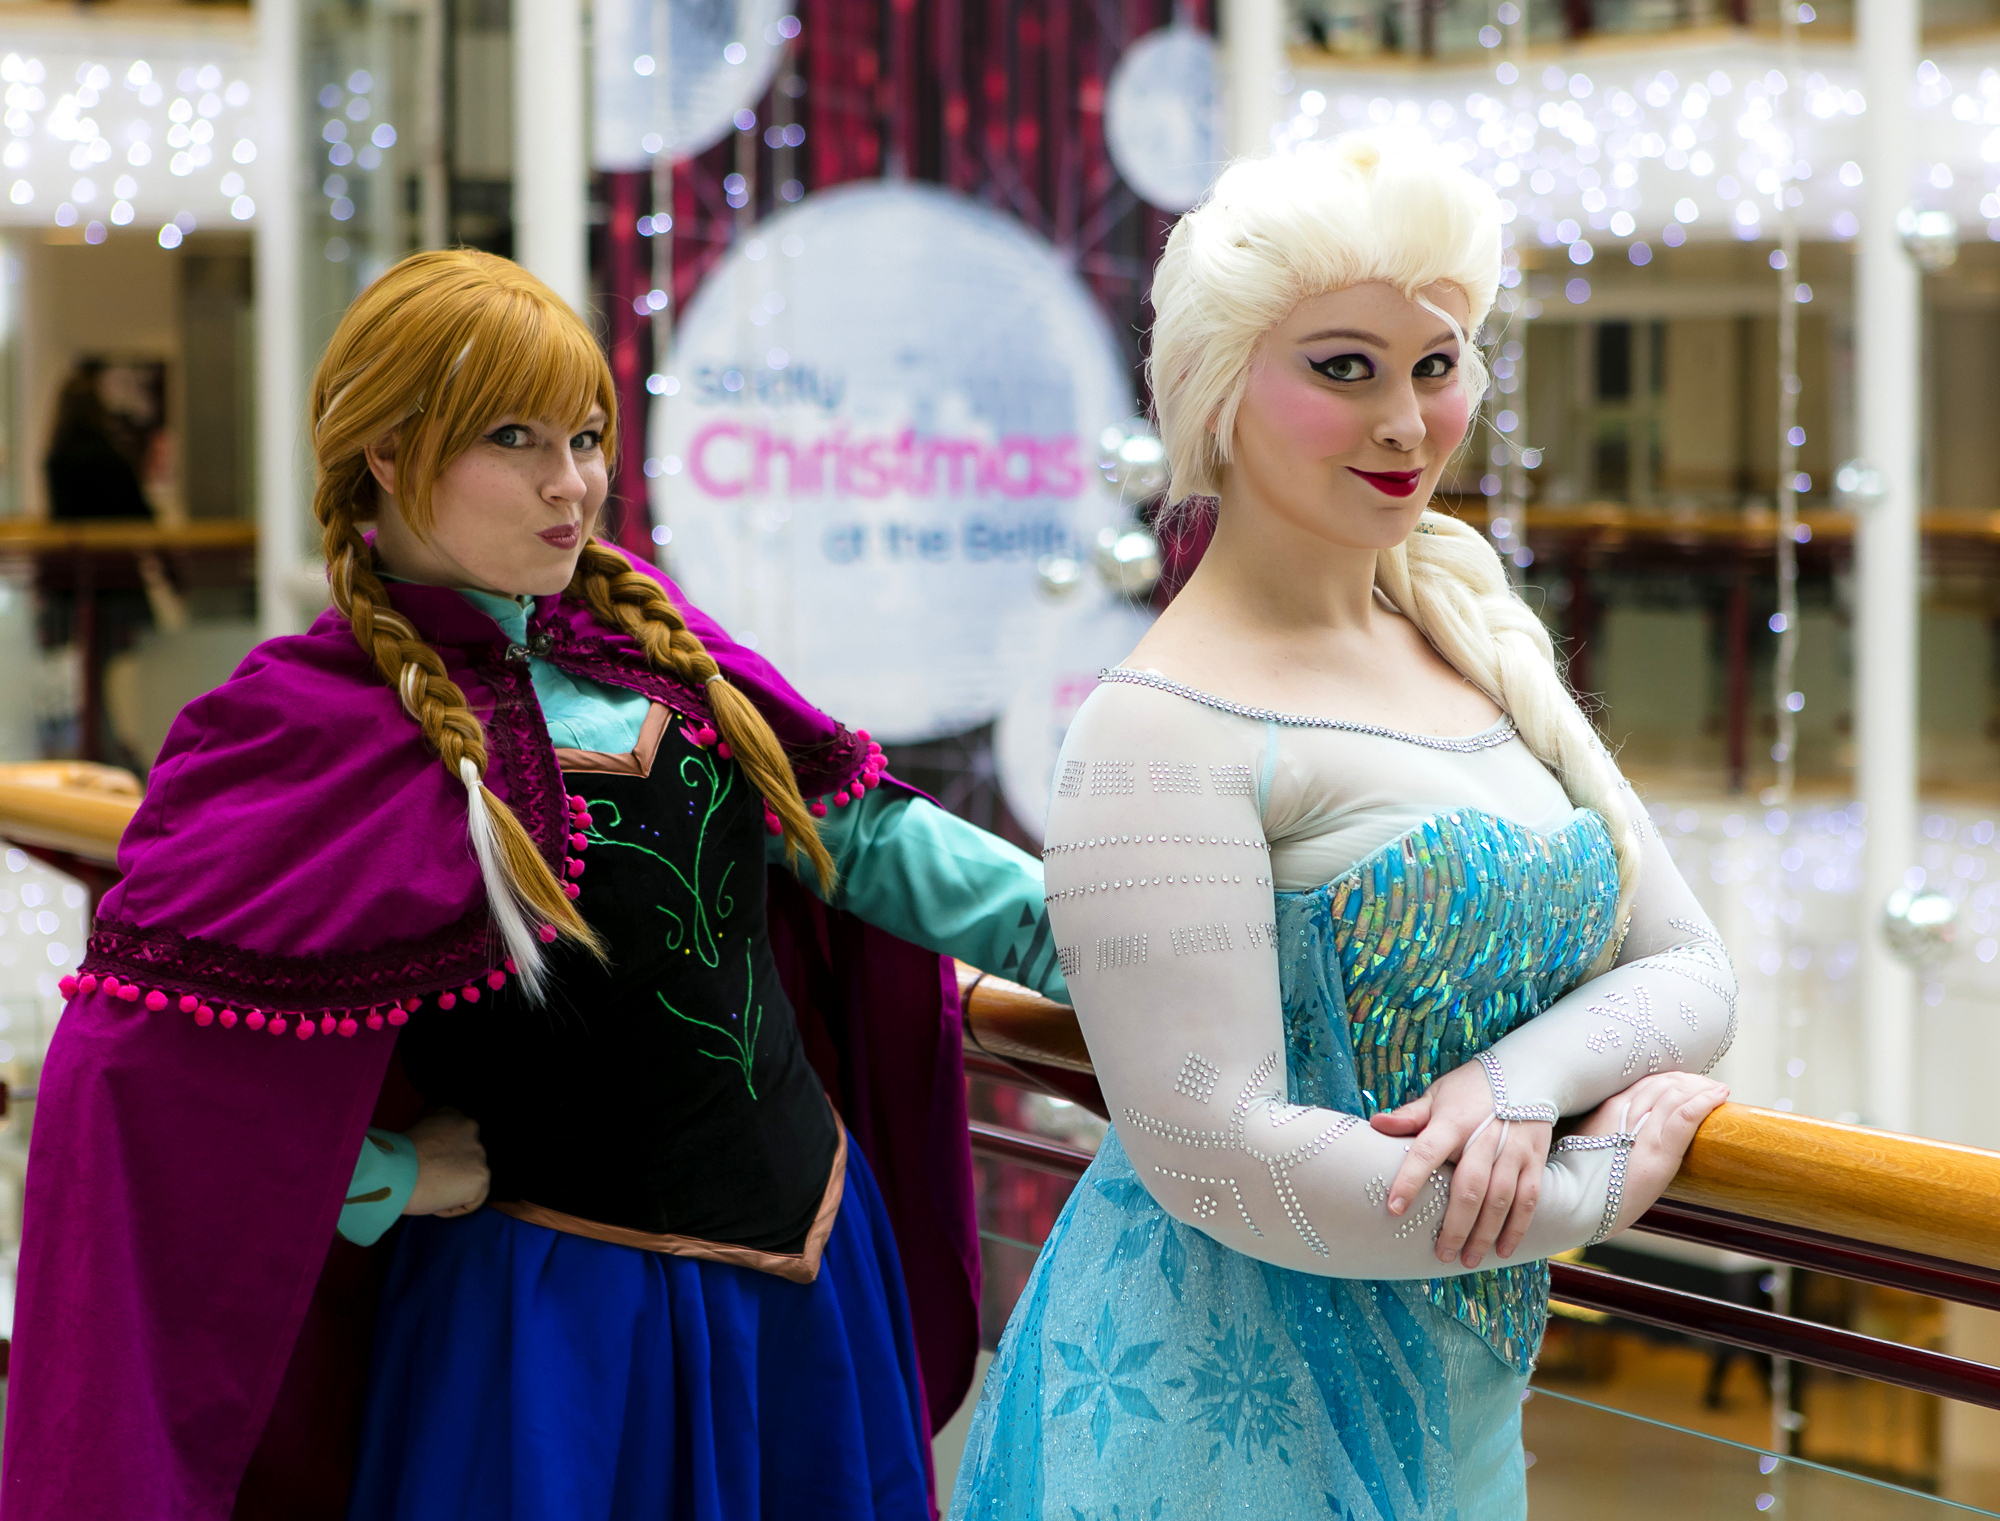 autism, aspergers, autism all stars, belfry, redhill, events, surrey, princesses, cosplay, characters